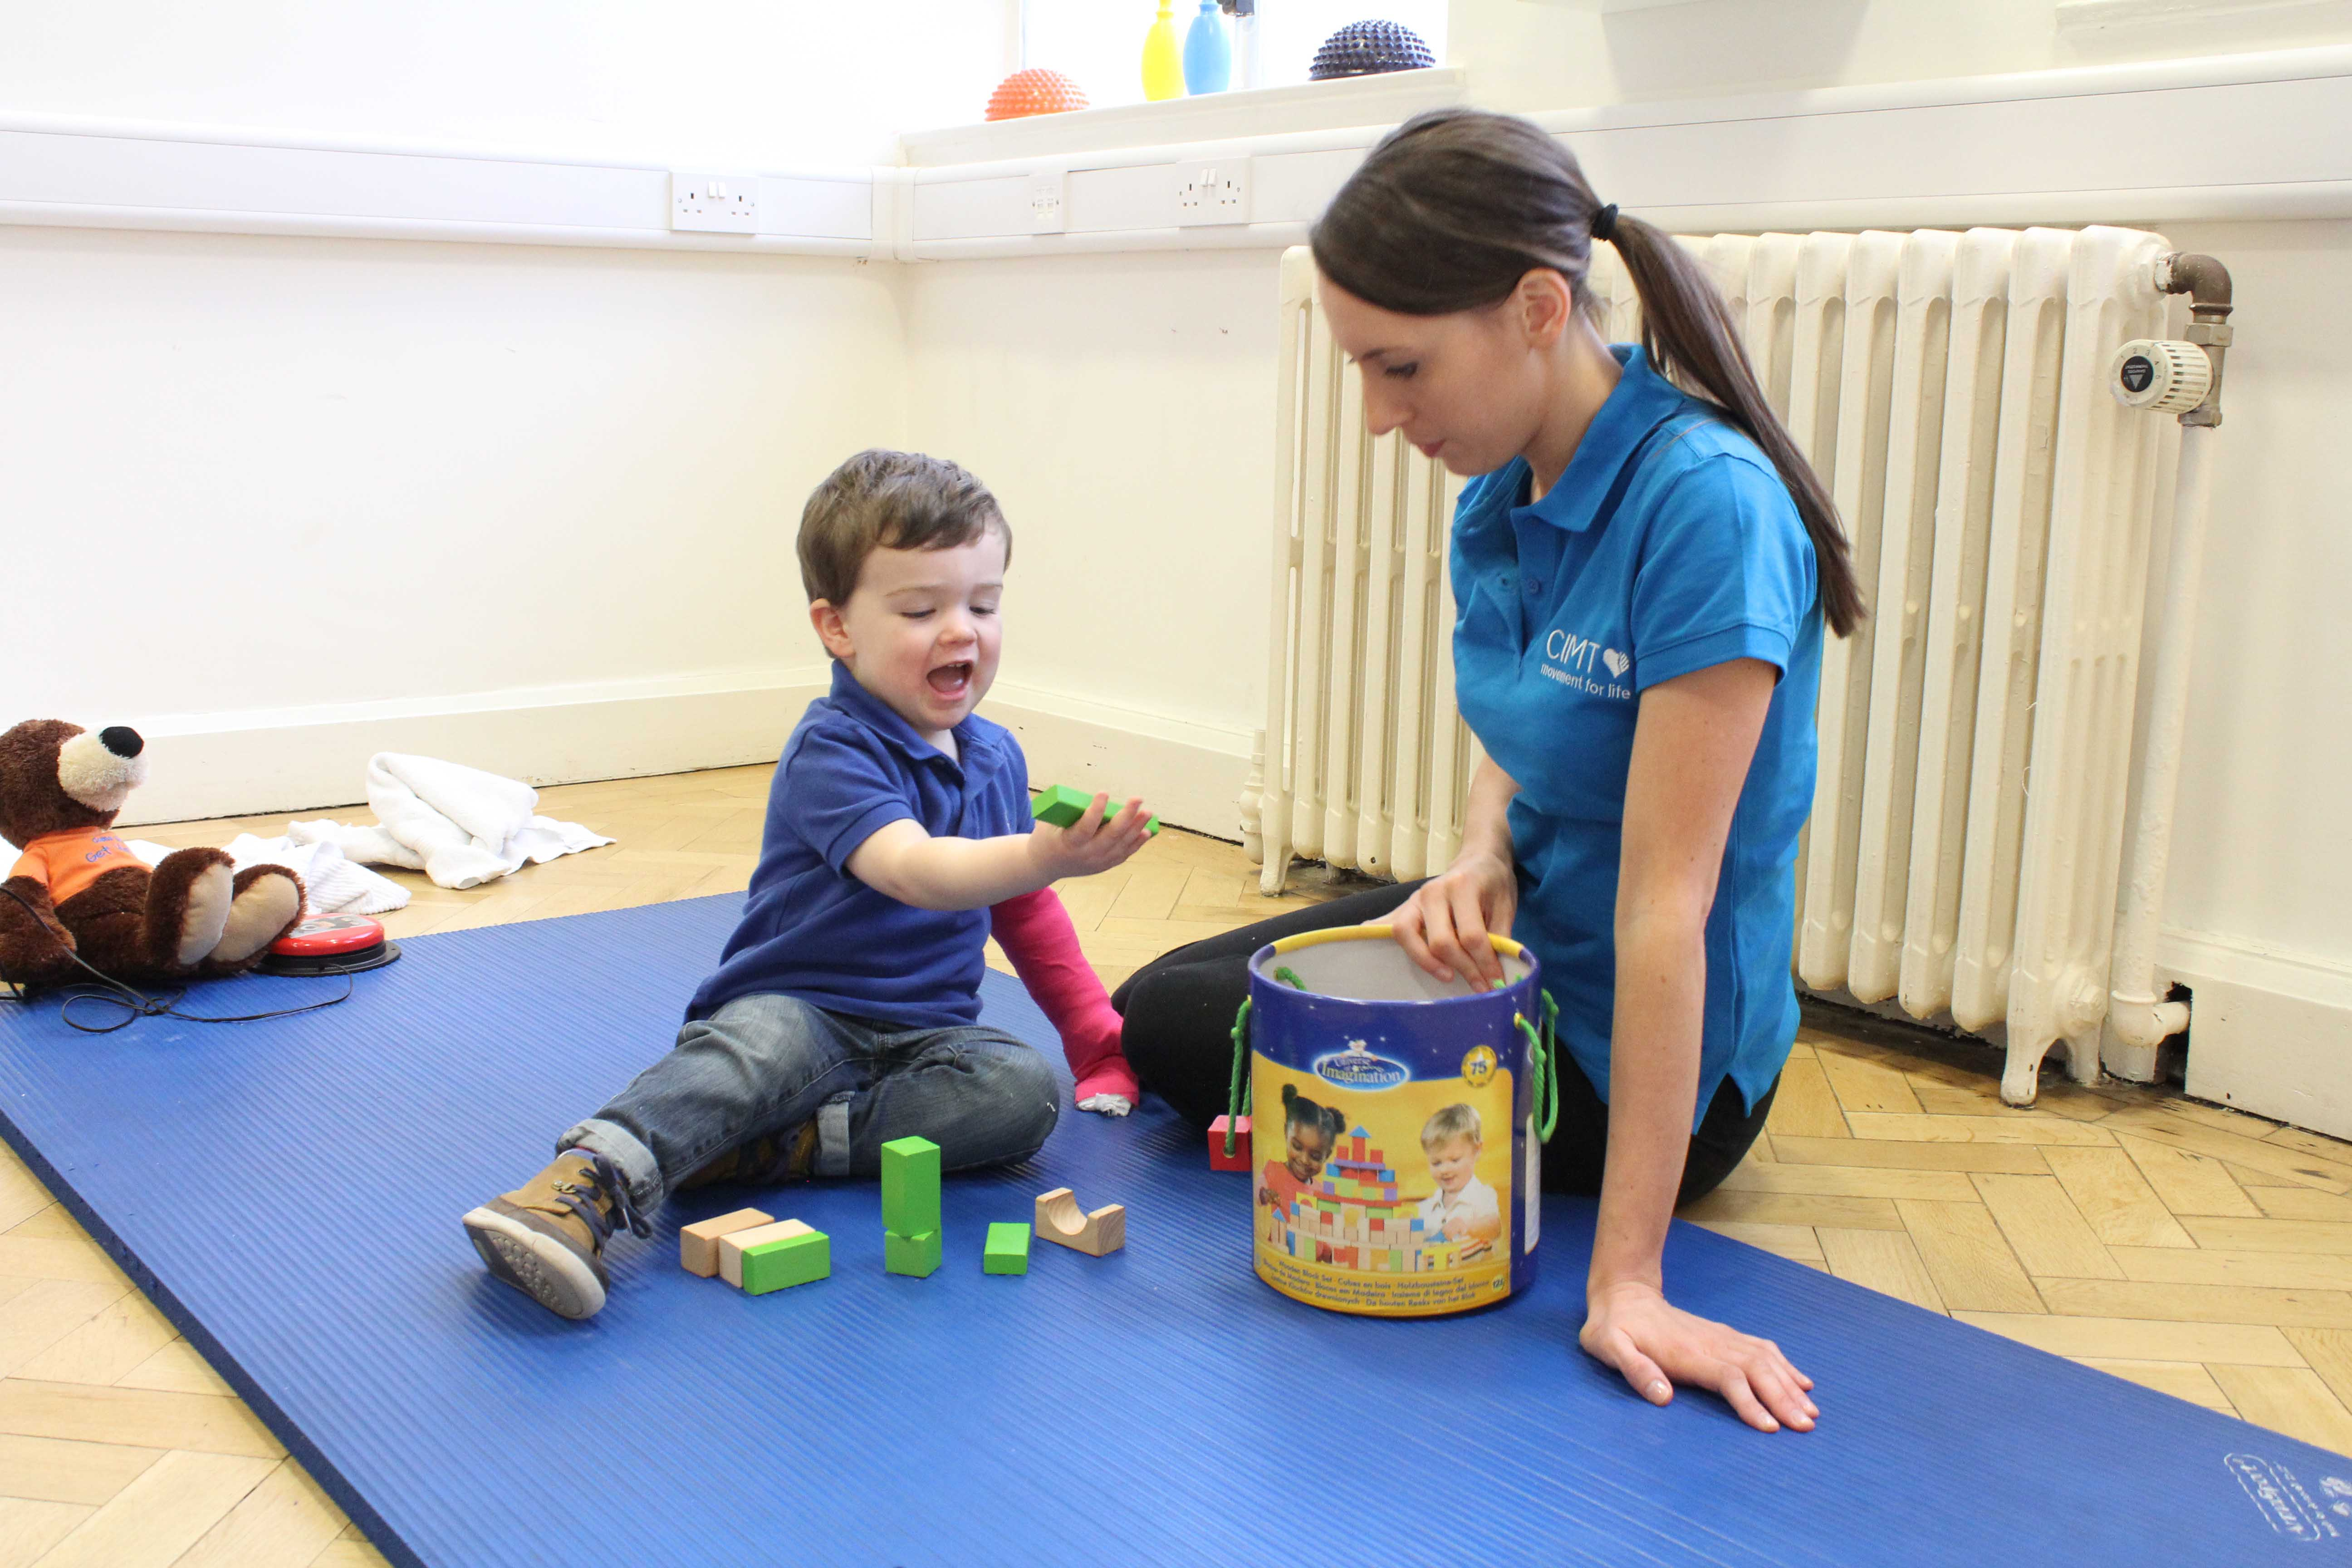 Equalising the development of fine motor skills by constraining the dominant limb and engaging with structured play